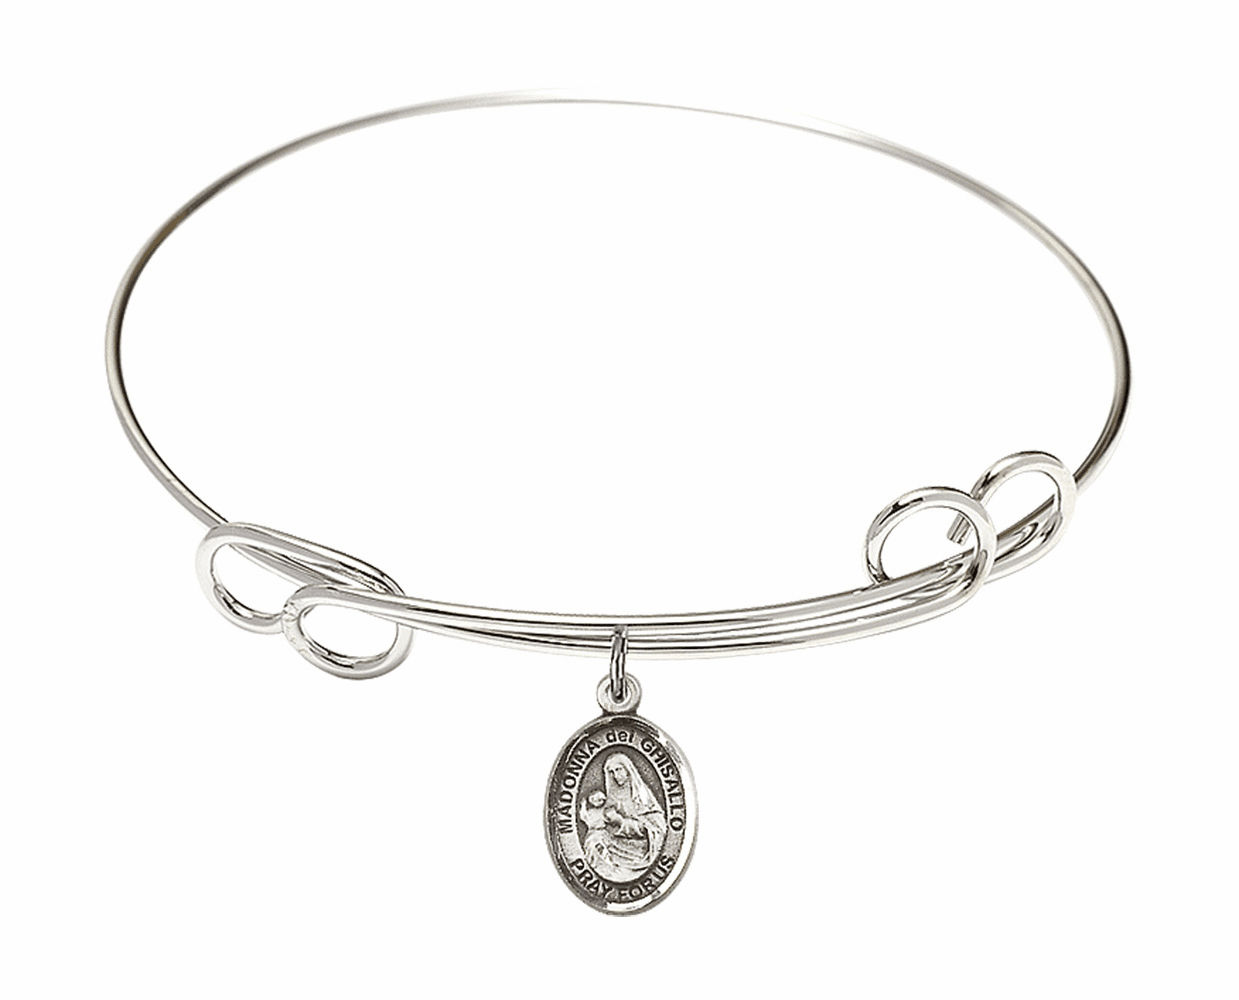 Round Loop Madonna del Ghisallo Bangle Charm Bracelet by Bliss